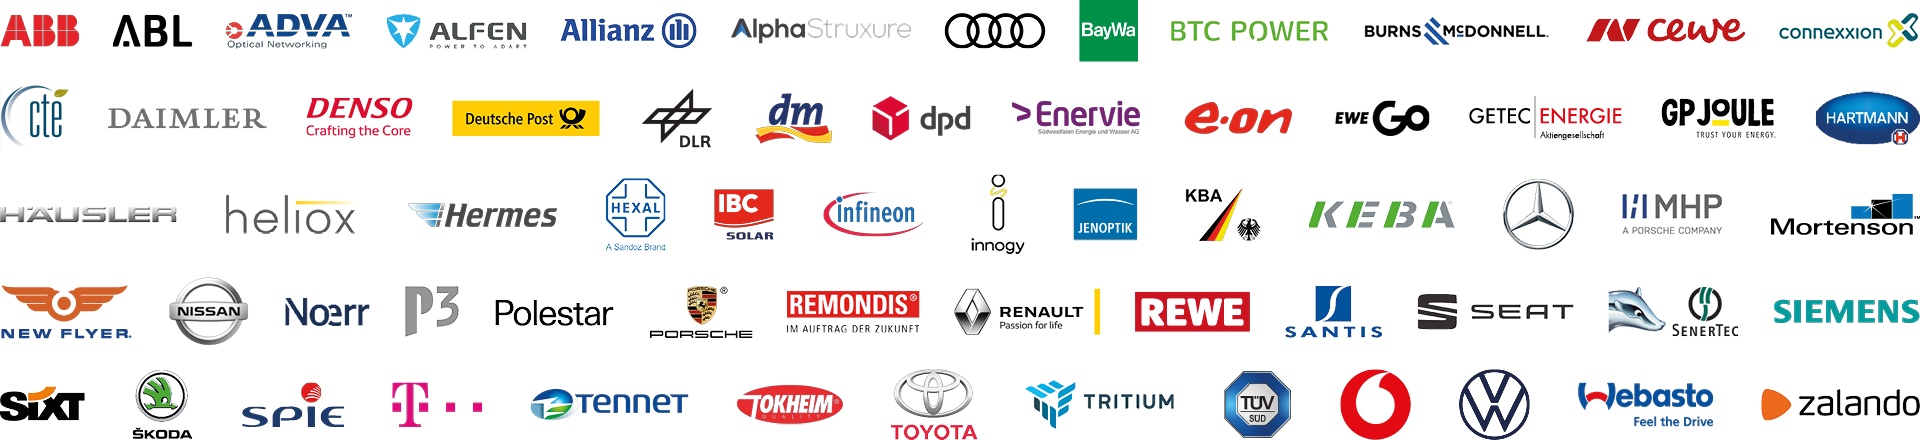 Our Customers and Partners